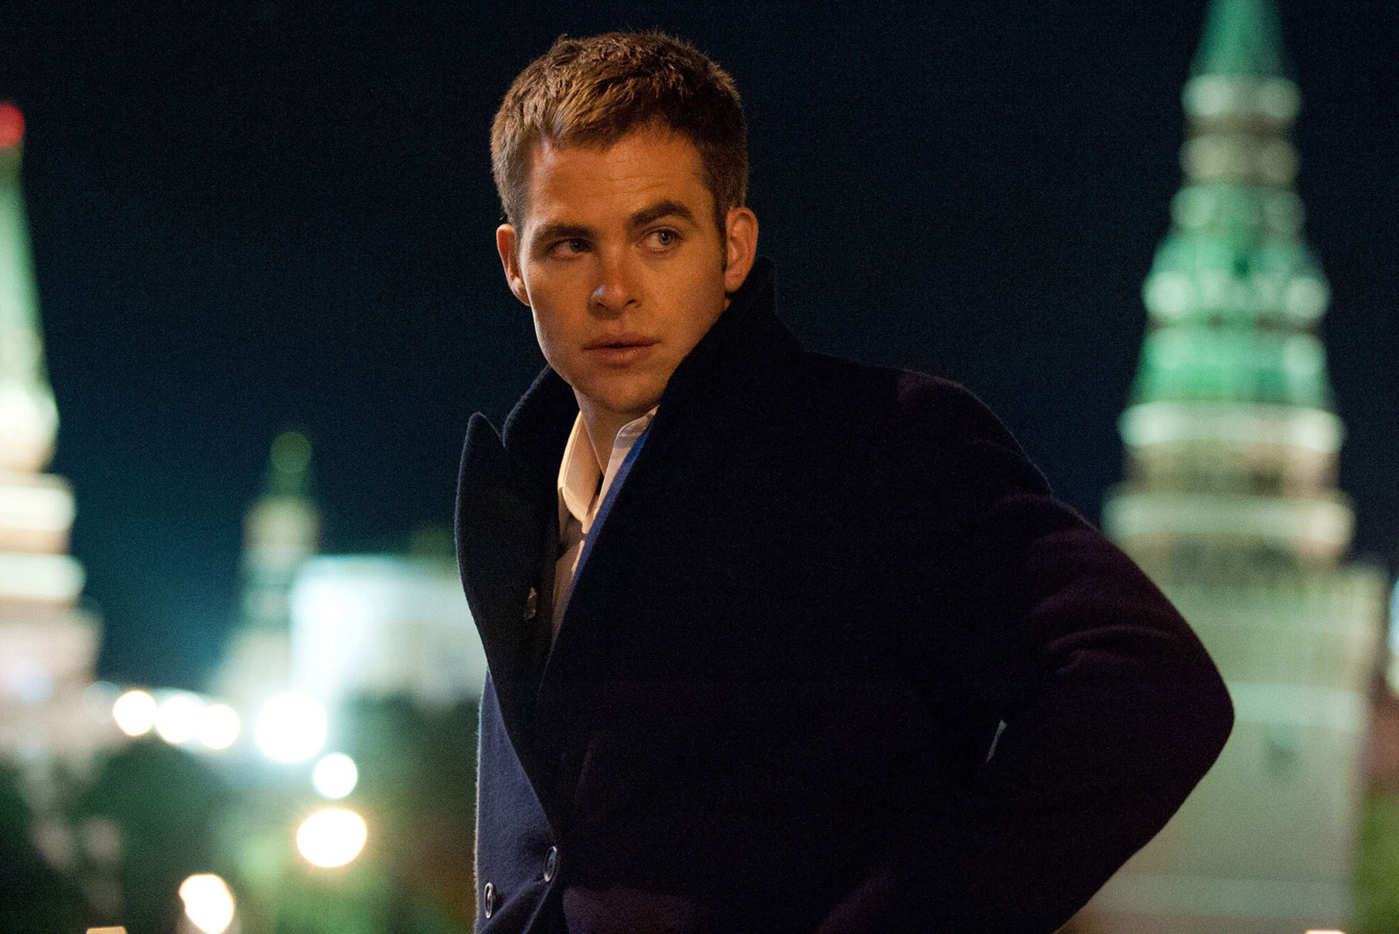 Who Played Jack Ryan, From Alec Baldwin to John Krasinski